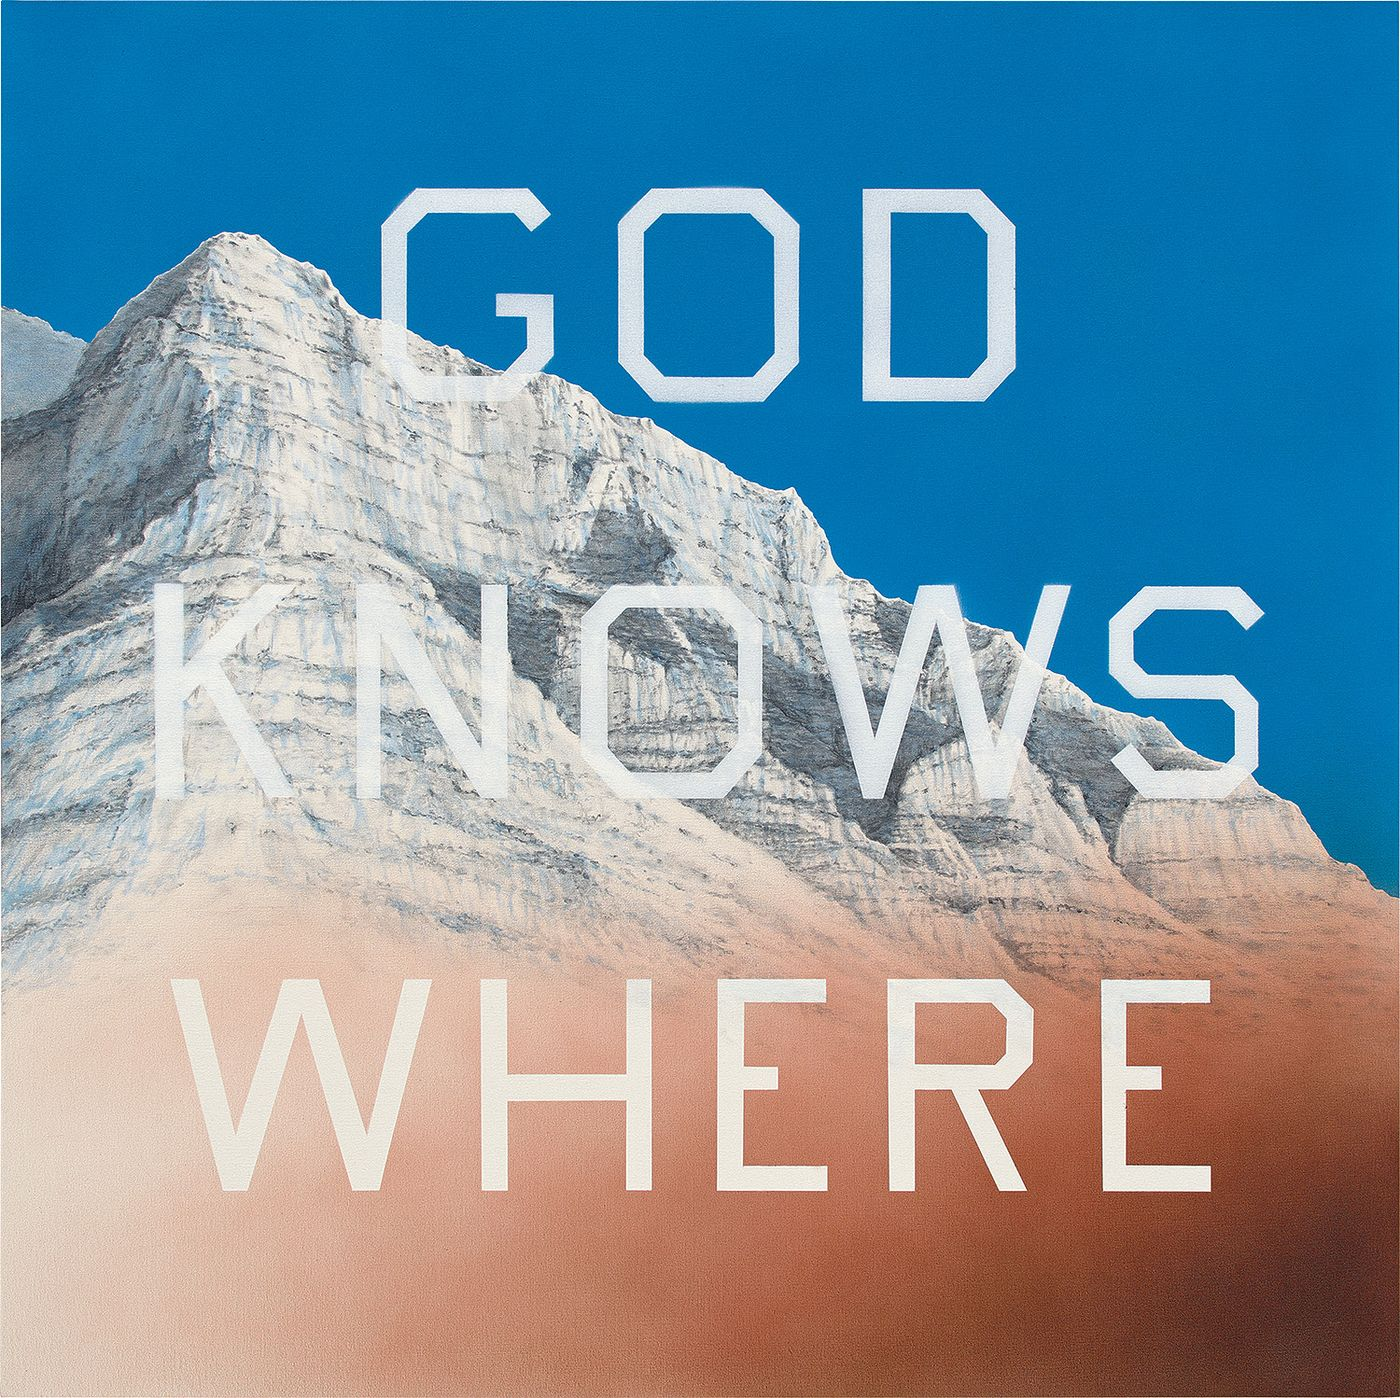 In this 2014 painting, Ruscha renders a spiritual scene absurd through the inclusion of commercially-appropriated text.